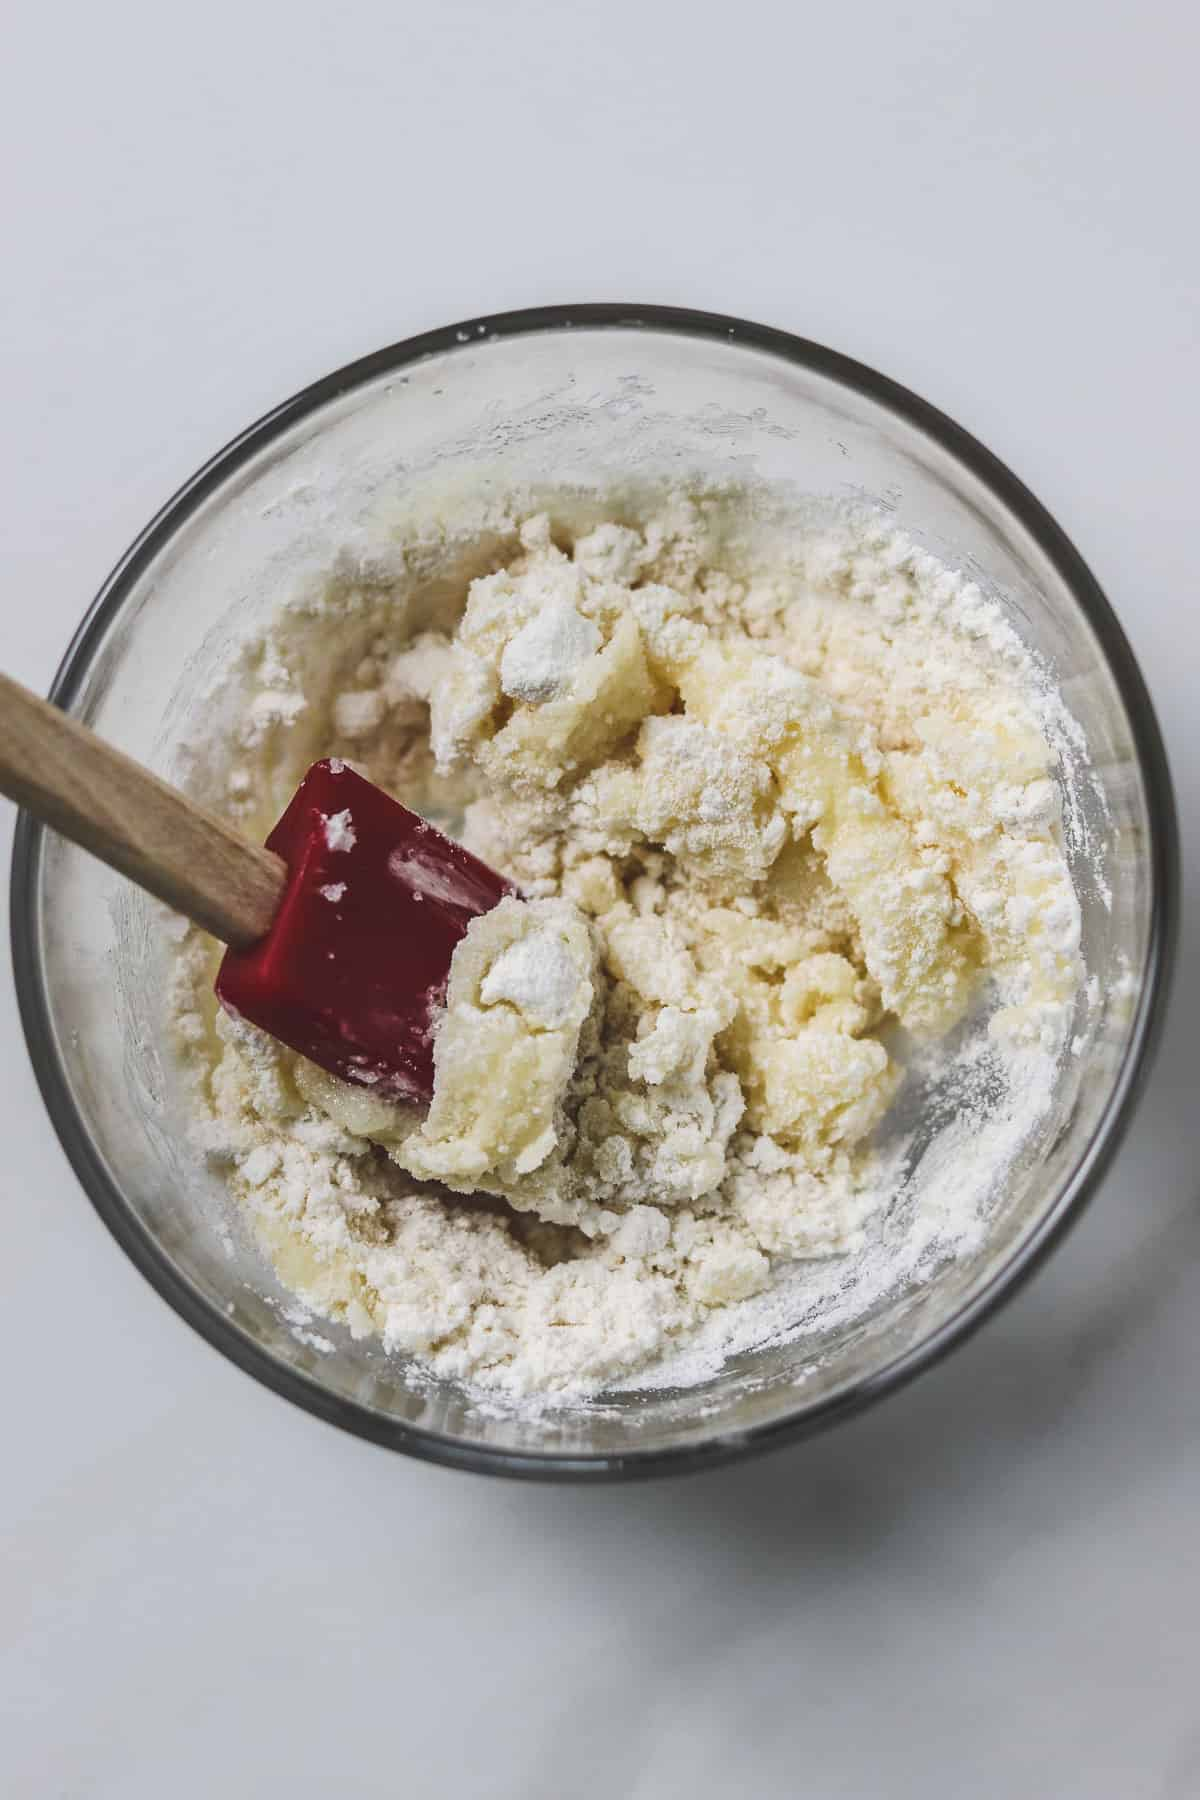 mixing flour with butter and sugar mixture in a small glass bowl